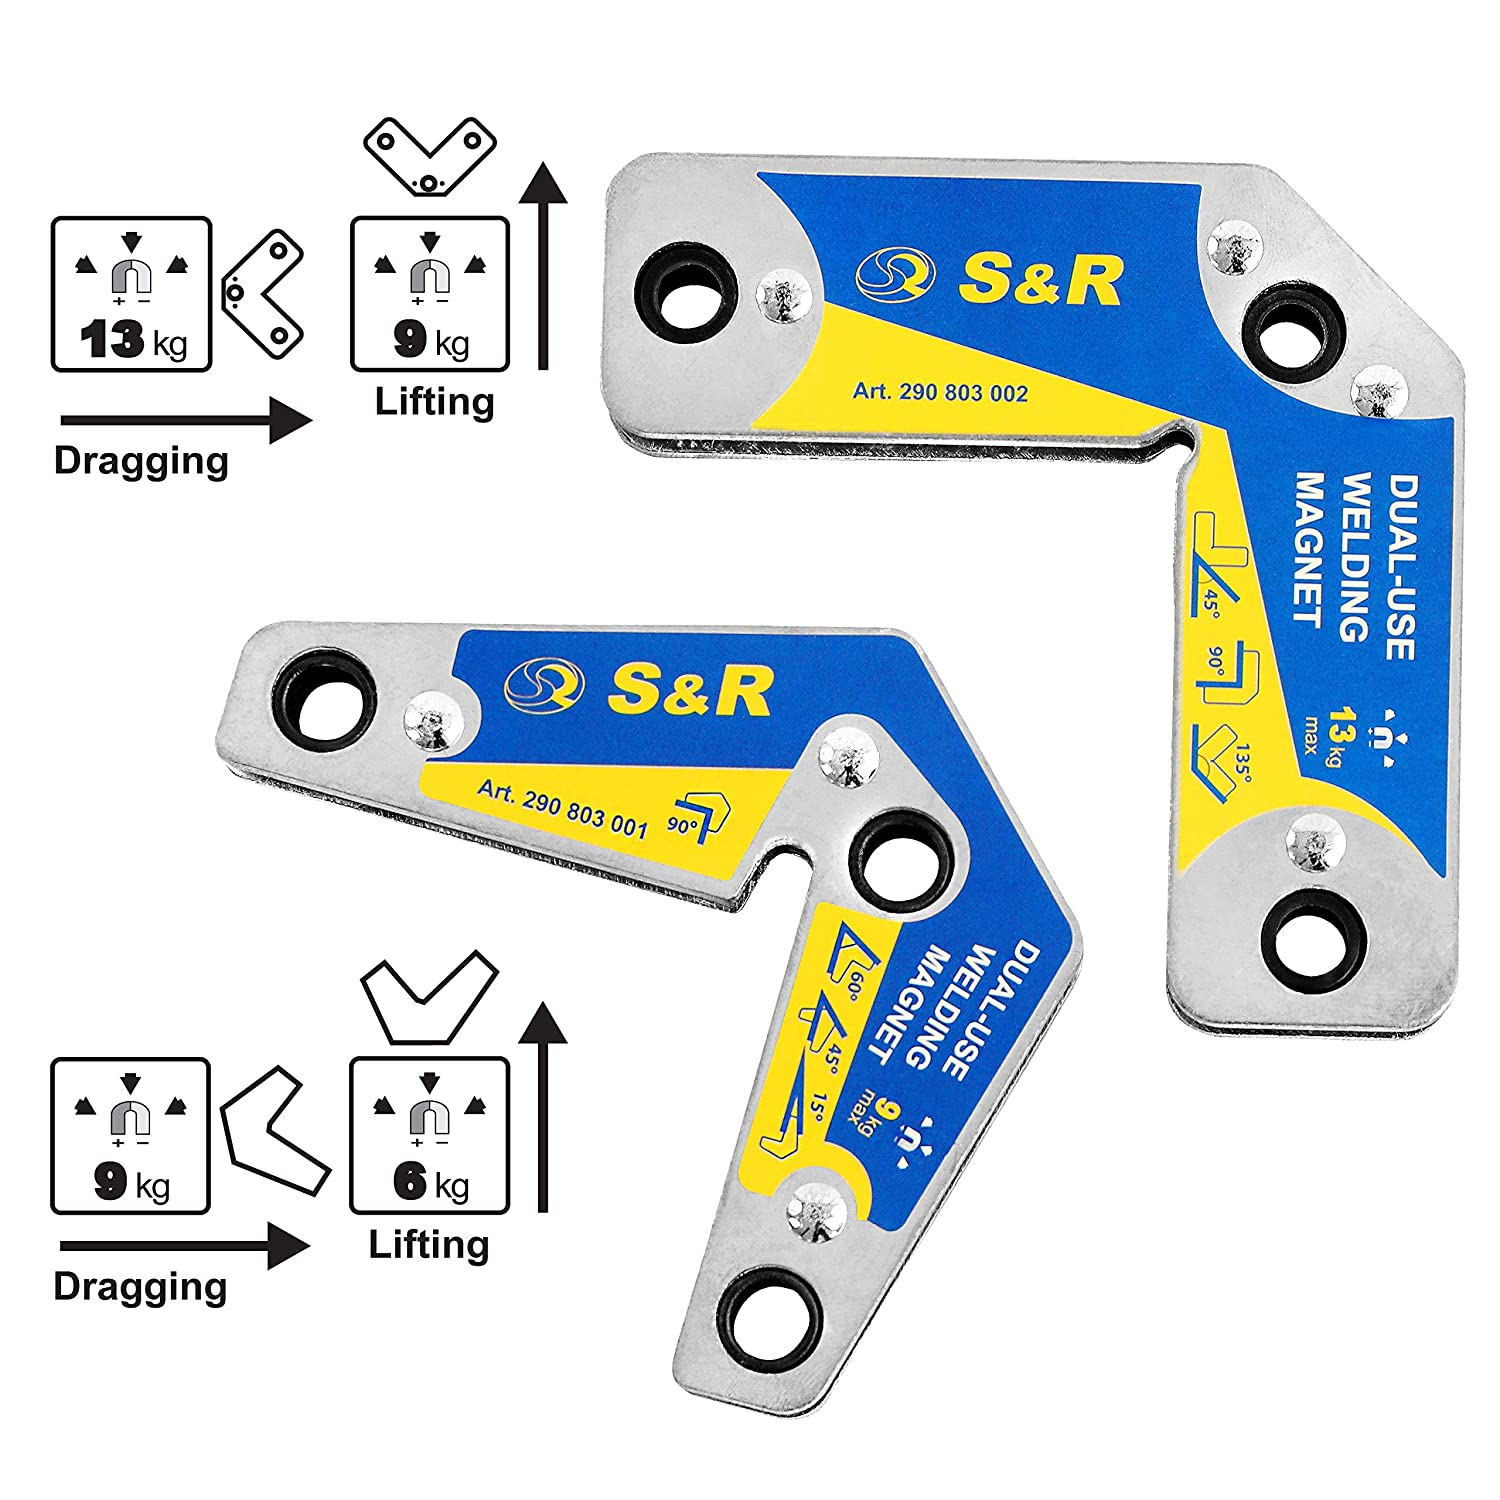 2-Pieces S/&R Welding Magnet Set with Angles 15/° 45/° 60/° 90/° 120/° 135/° 165/° Holding Force up to 9 KG and up to 13 KG